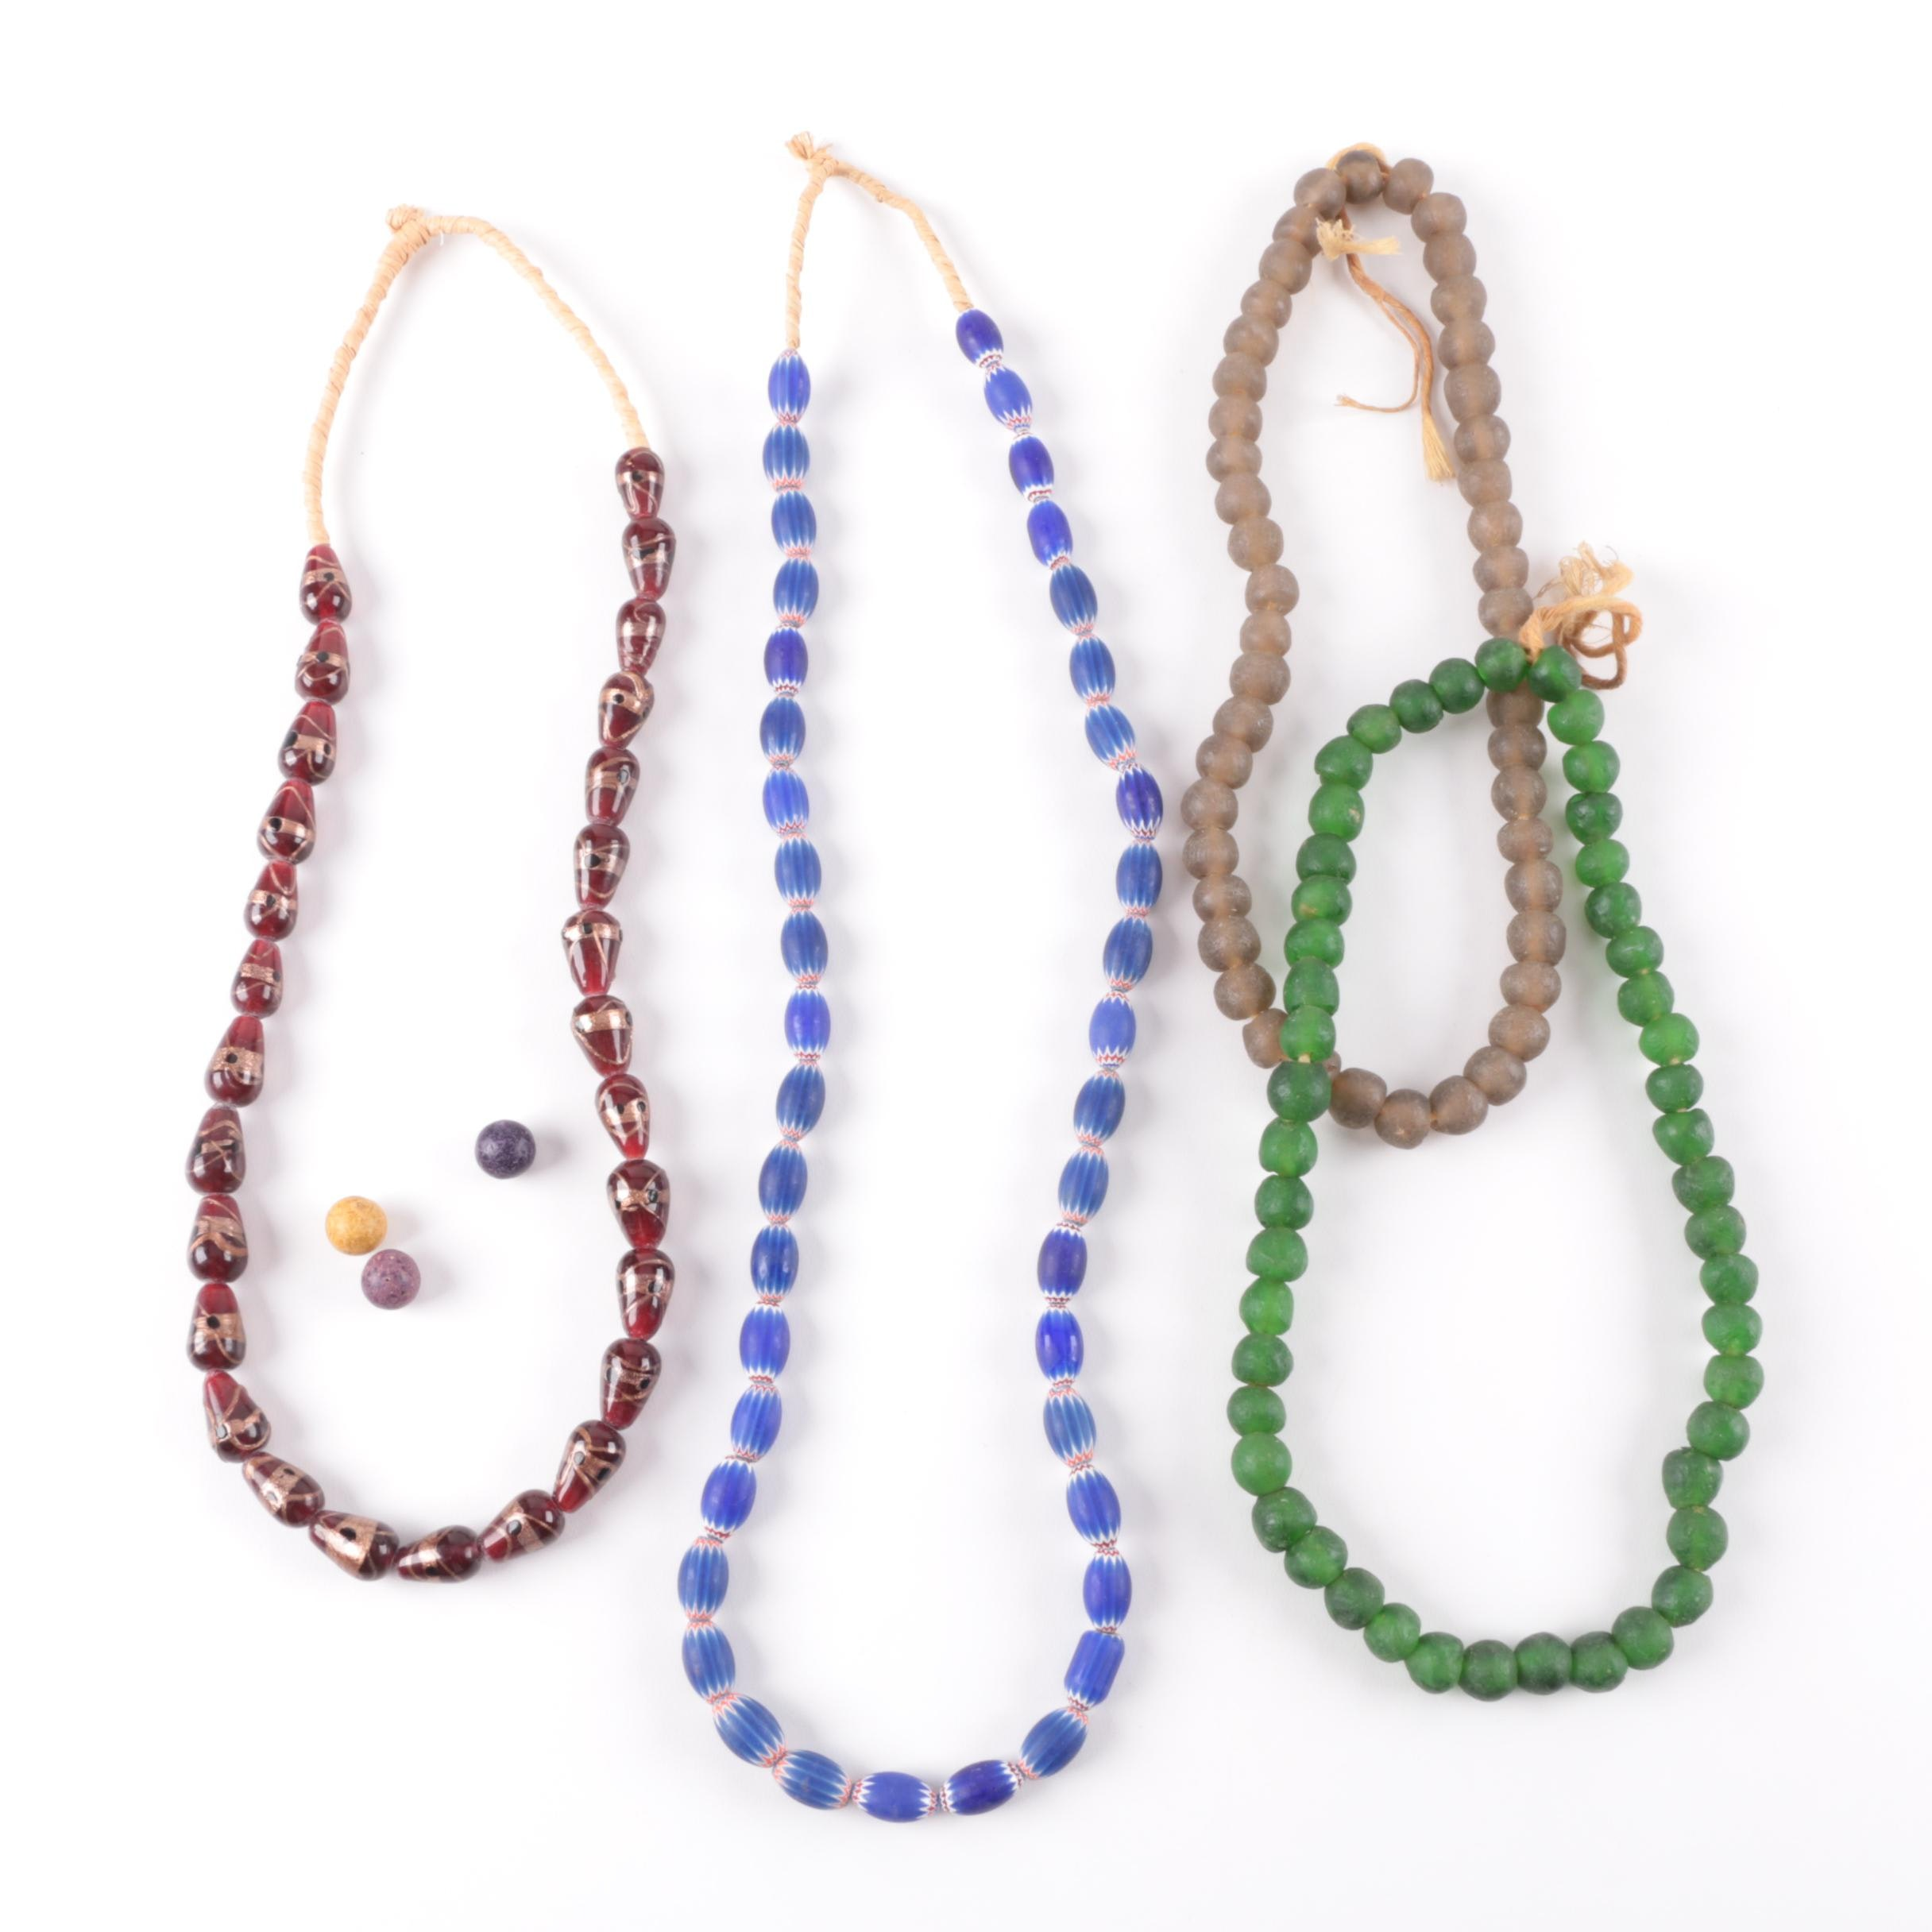 African Glass Trade Bead Hanks Including Chevron and Venetian Style Beads